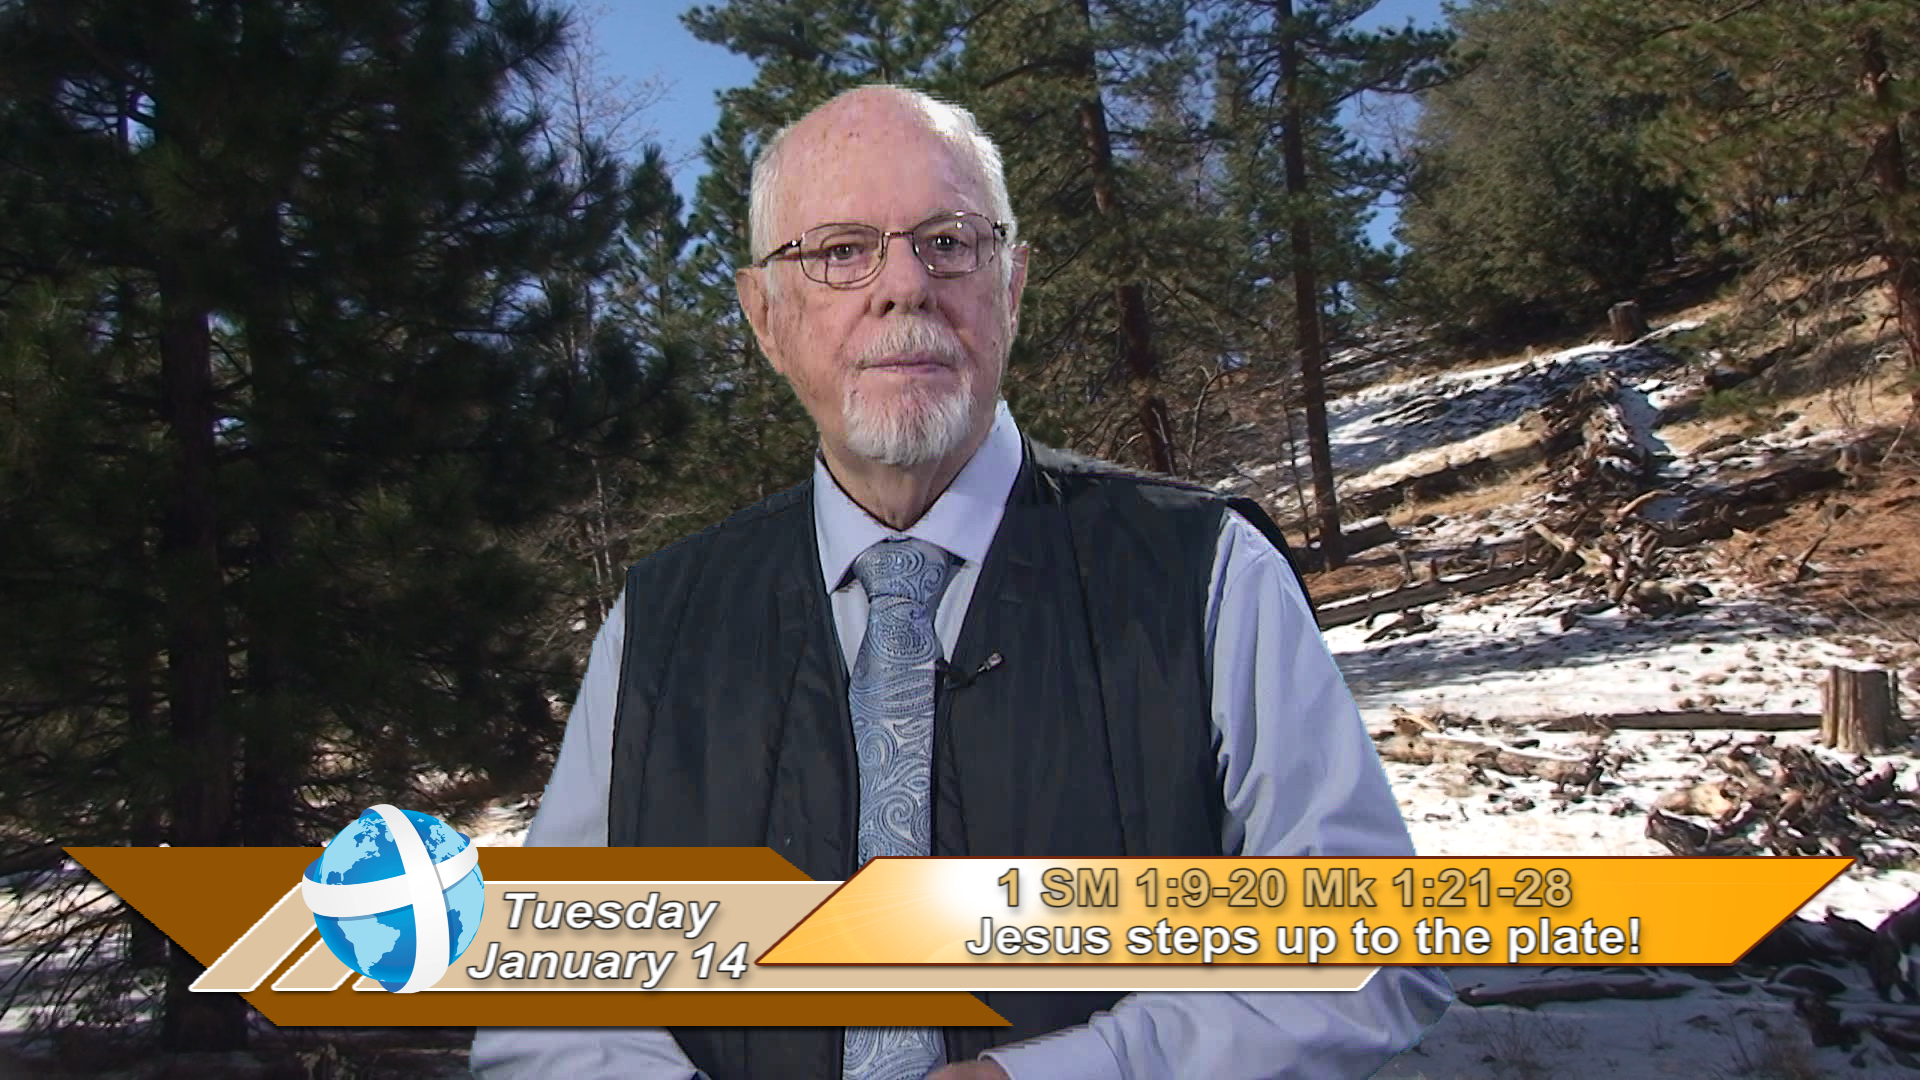 Artwork for iGod Today with Br. Steve Pardy, SVD; Today's topic:  Jesus steps up to the plate!